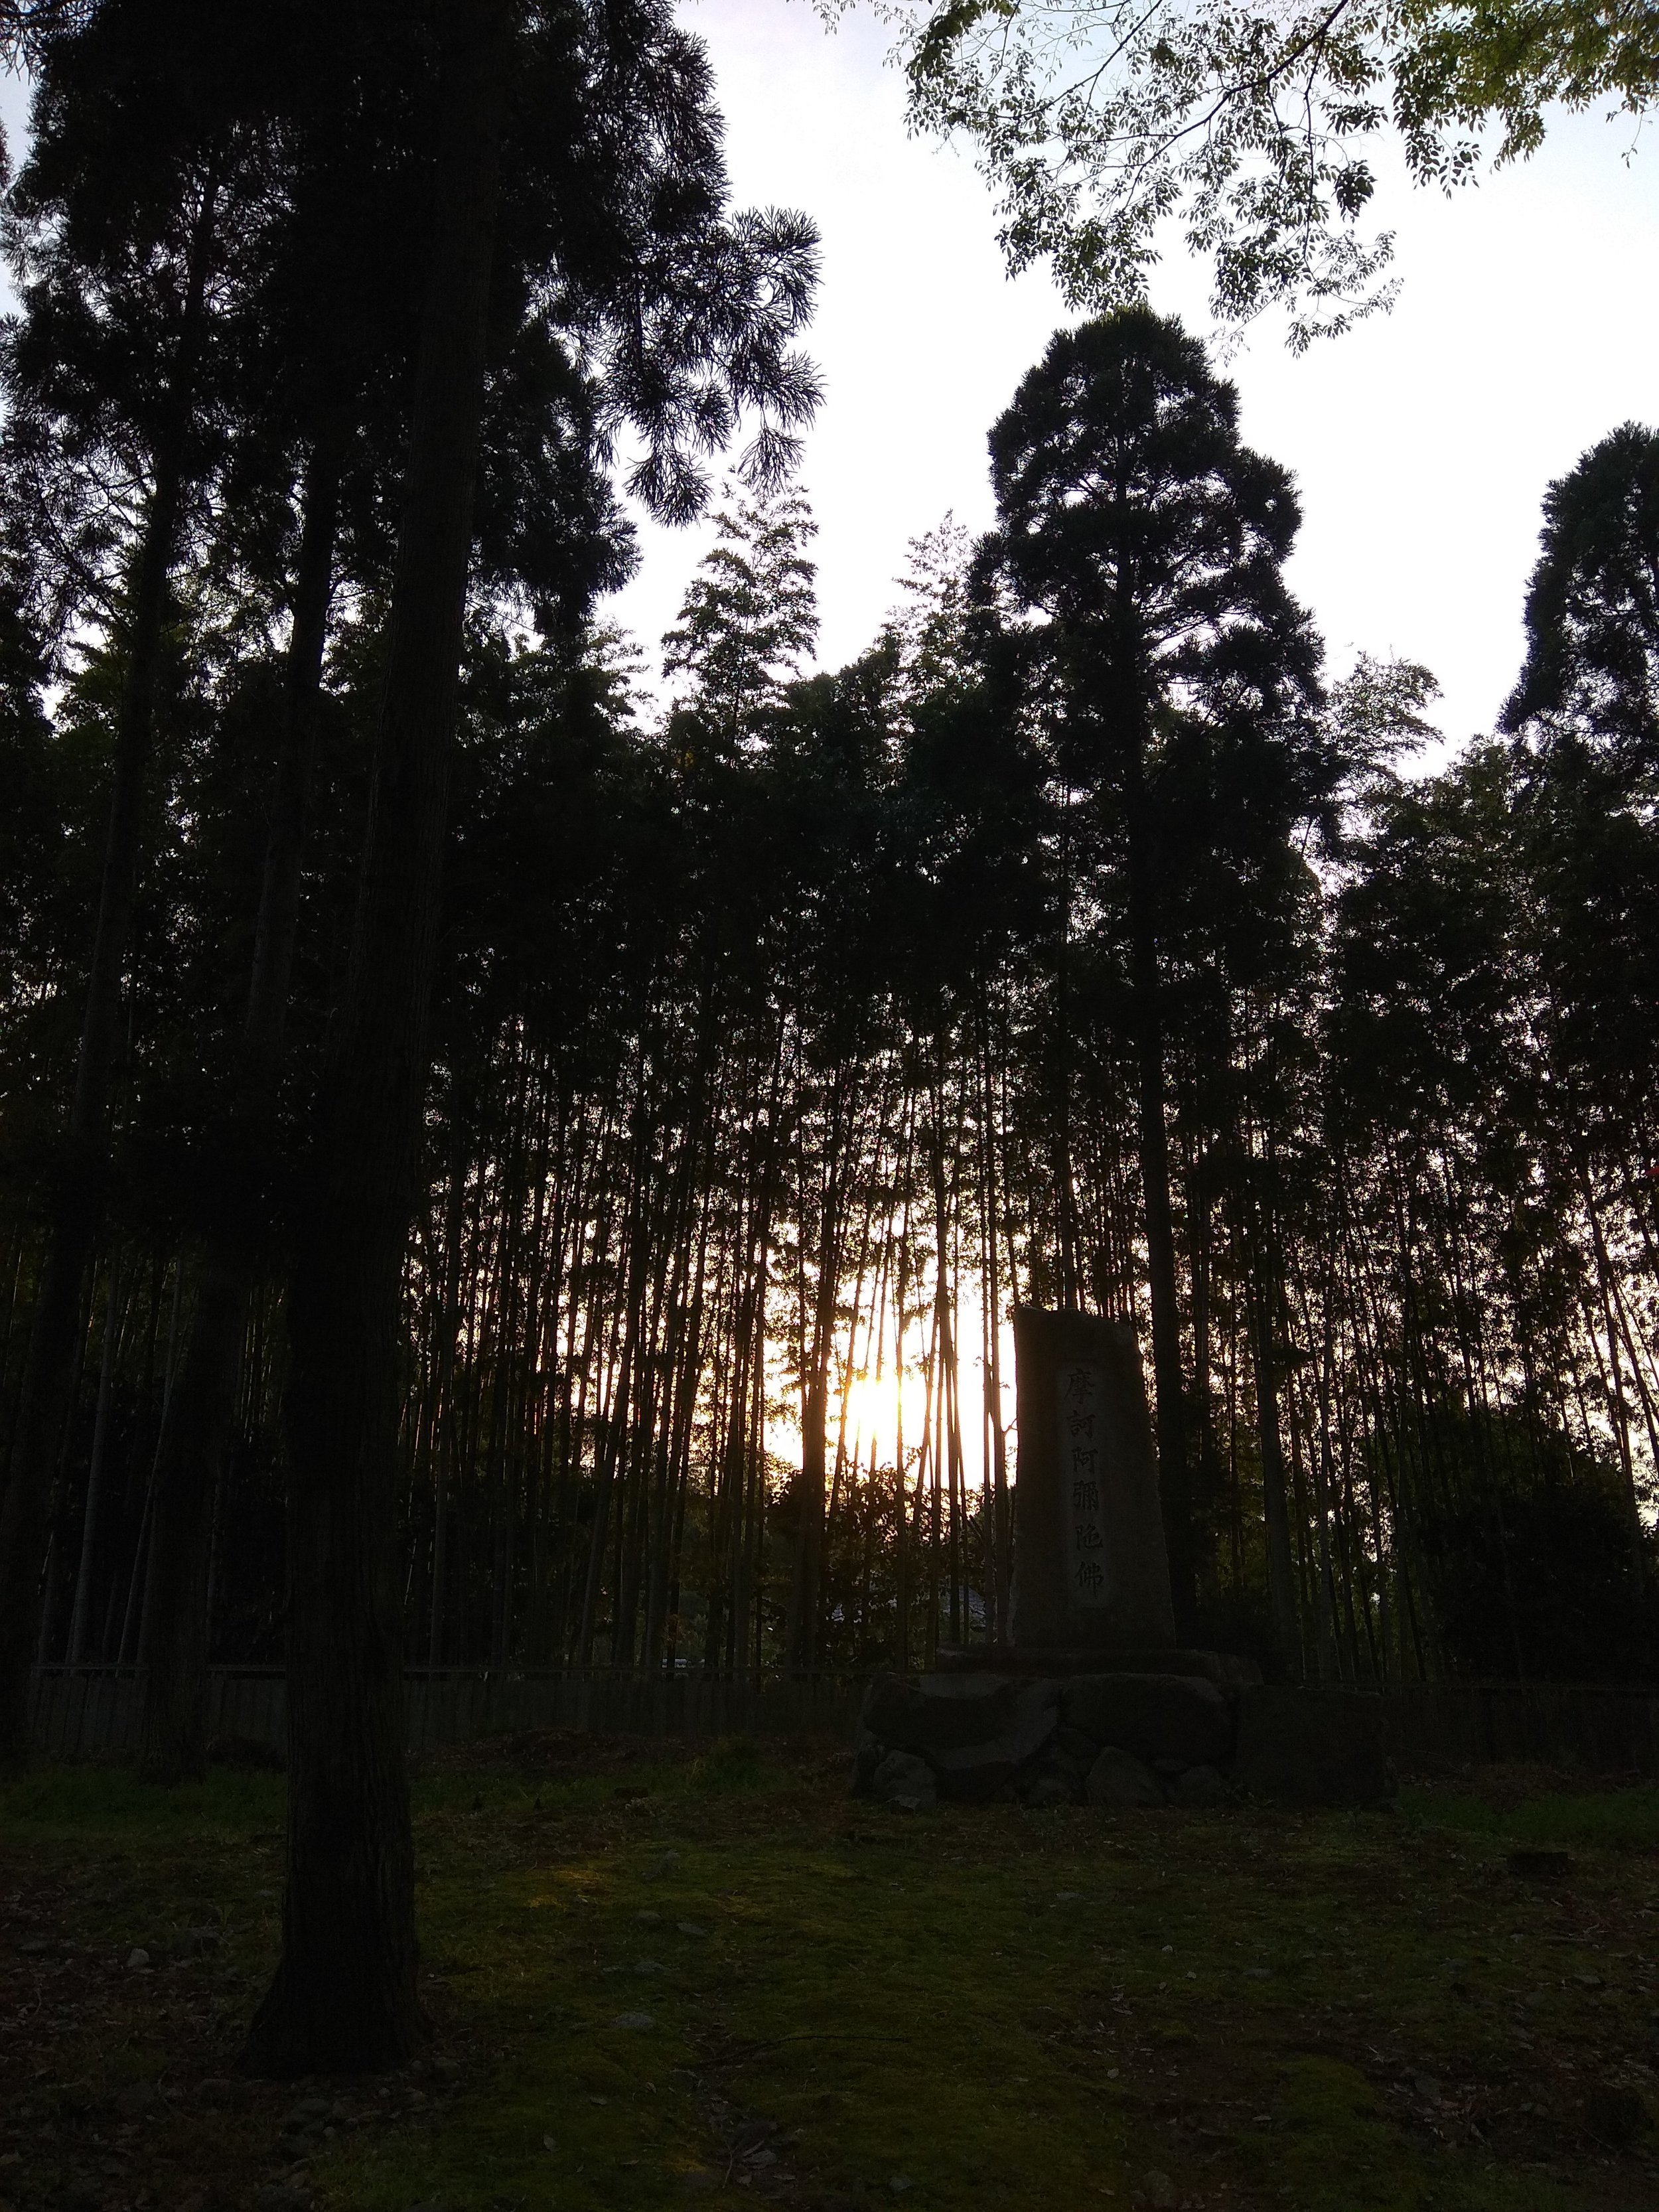 [Image description: photograph of a bright sunset through a forest of slender trees. In the dark foreground, a small stone structure is just visible.]